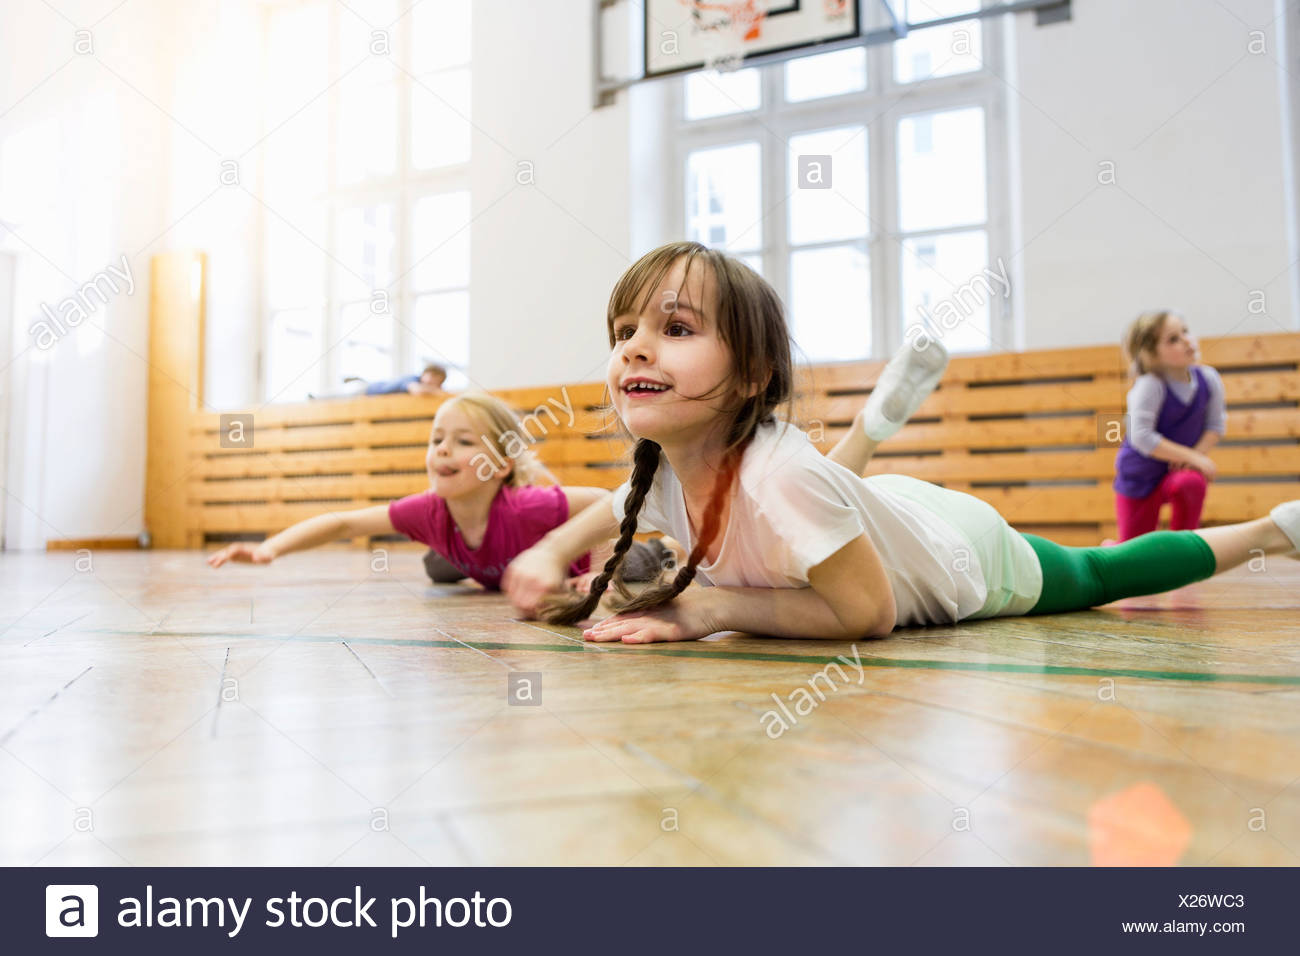 Girls lying on front in physical education class, stretching - Stock Image